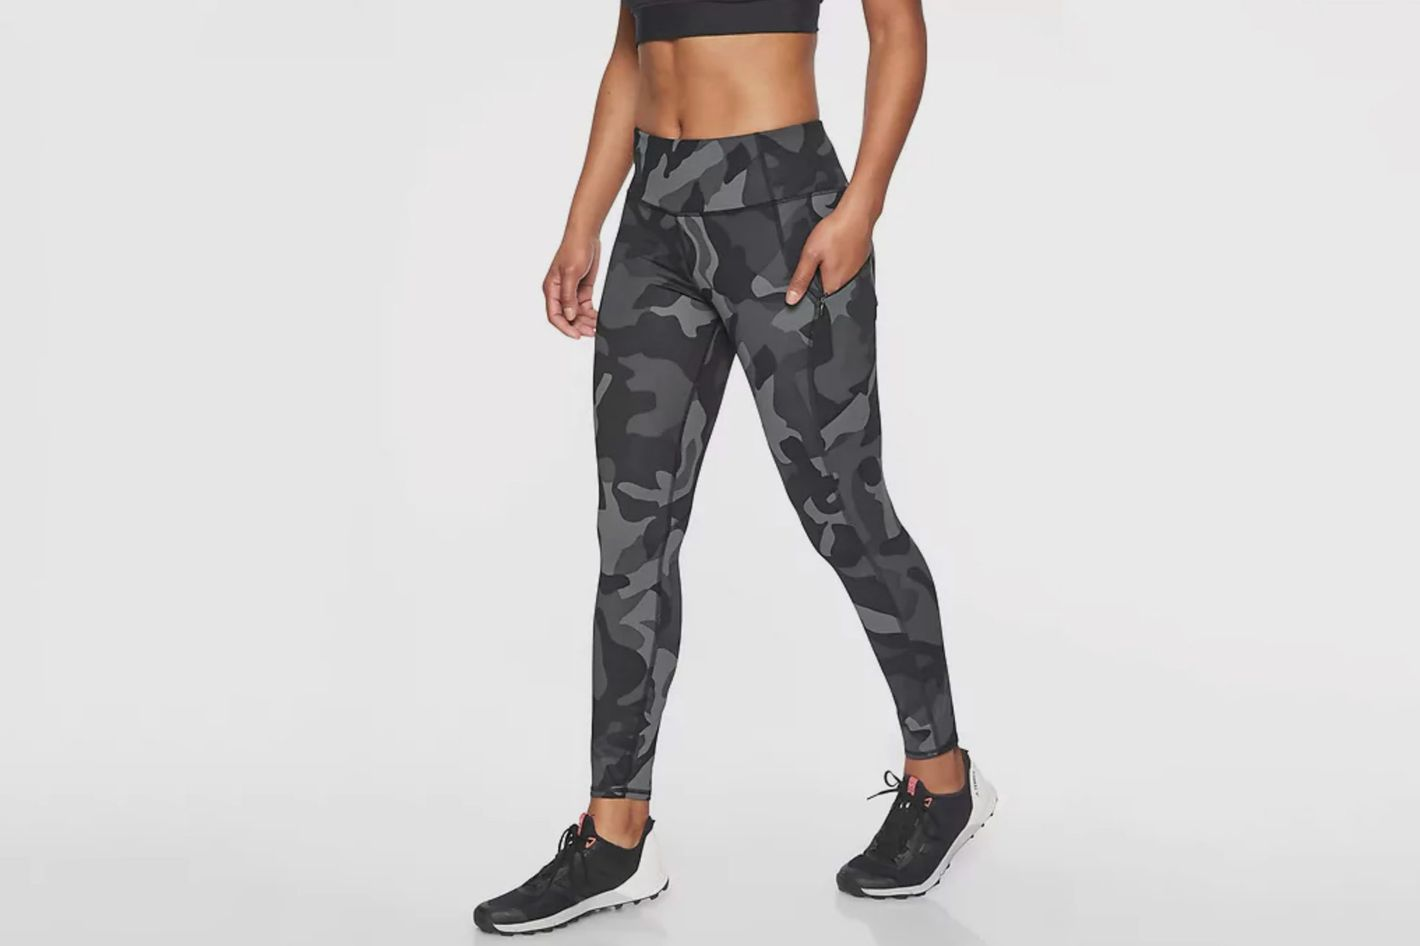 00e1d9006ac6e1 10 High-Waisted Leggings That are Perfect for Your Workout